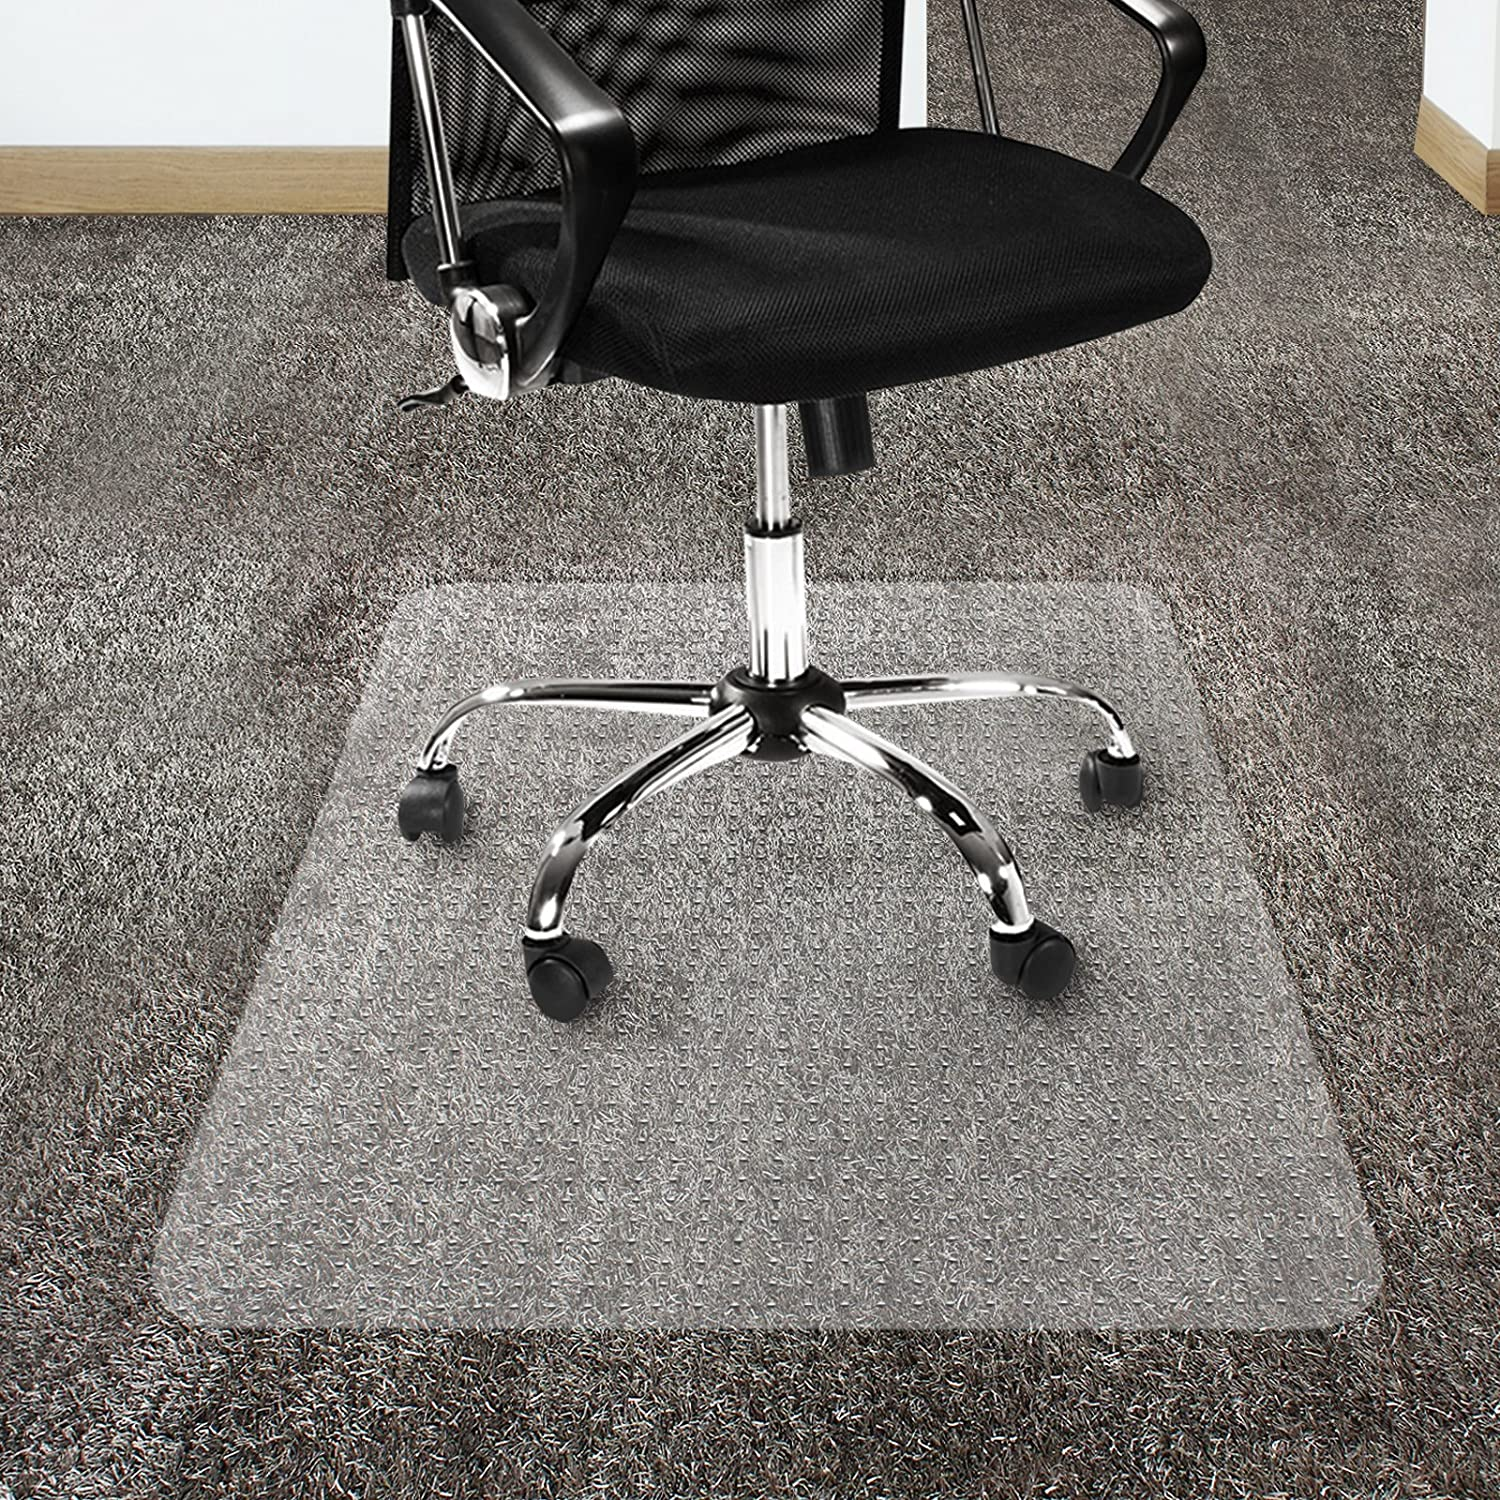 amazon com office marshal polycarbonate chair mat for high pile